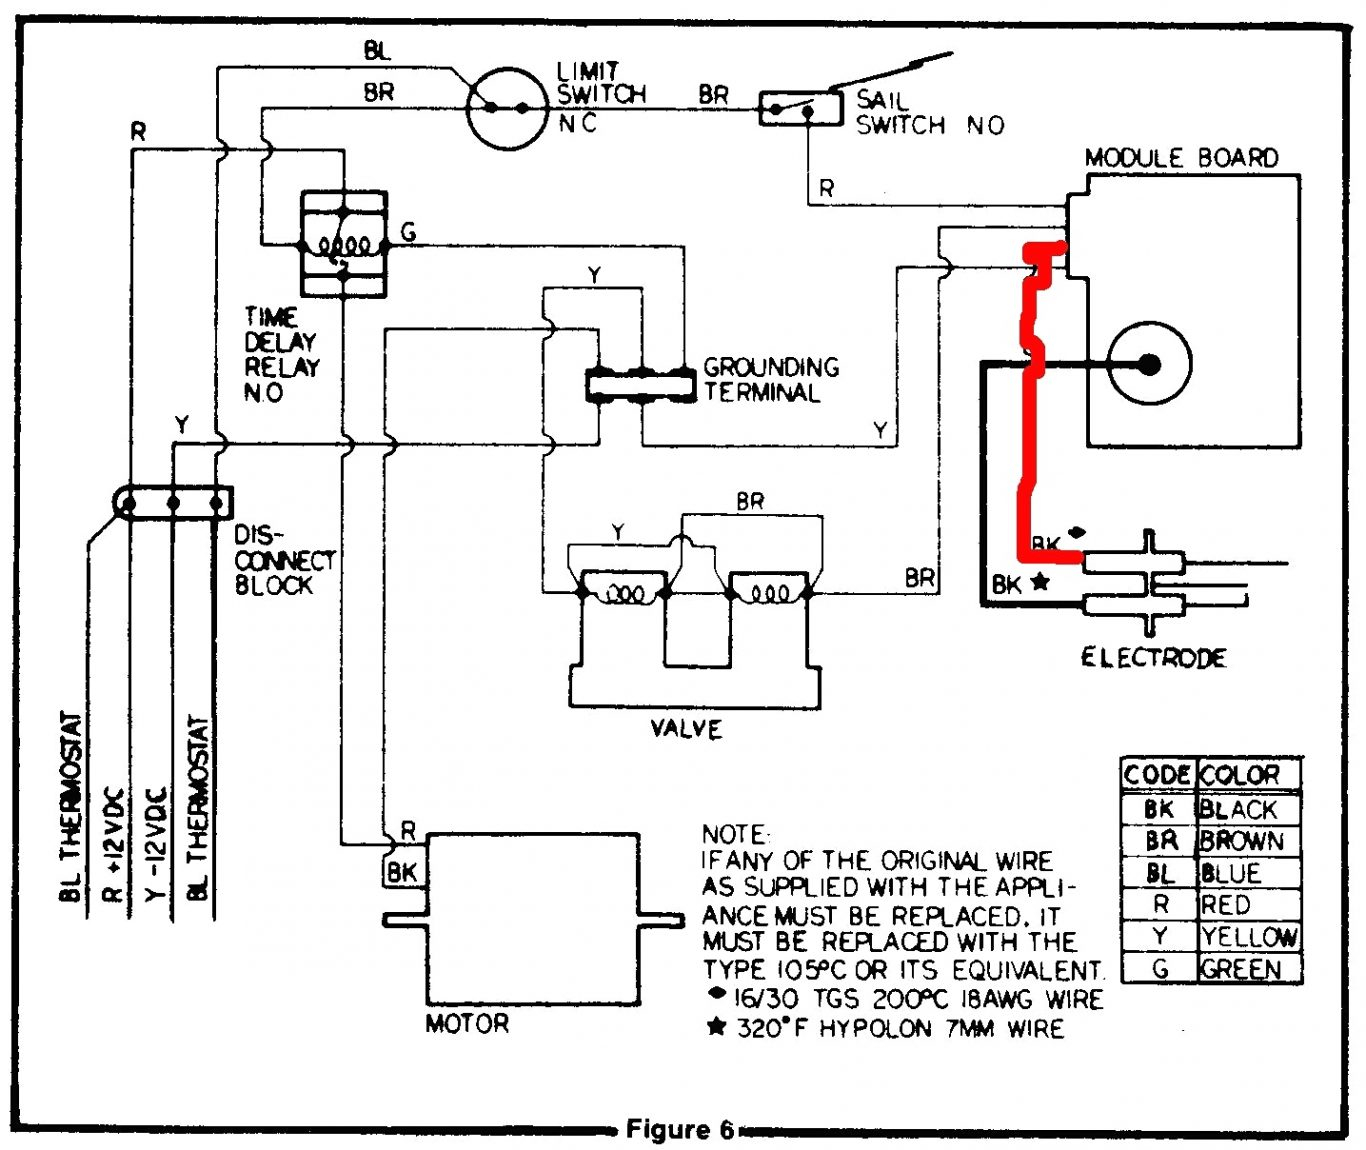 980E86C Evcon Air Conditioner Wiring Diagrams | Wiring LibraryWiring Library